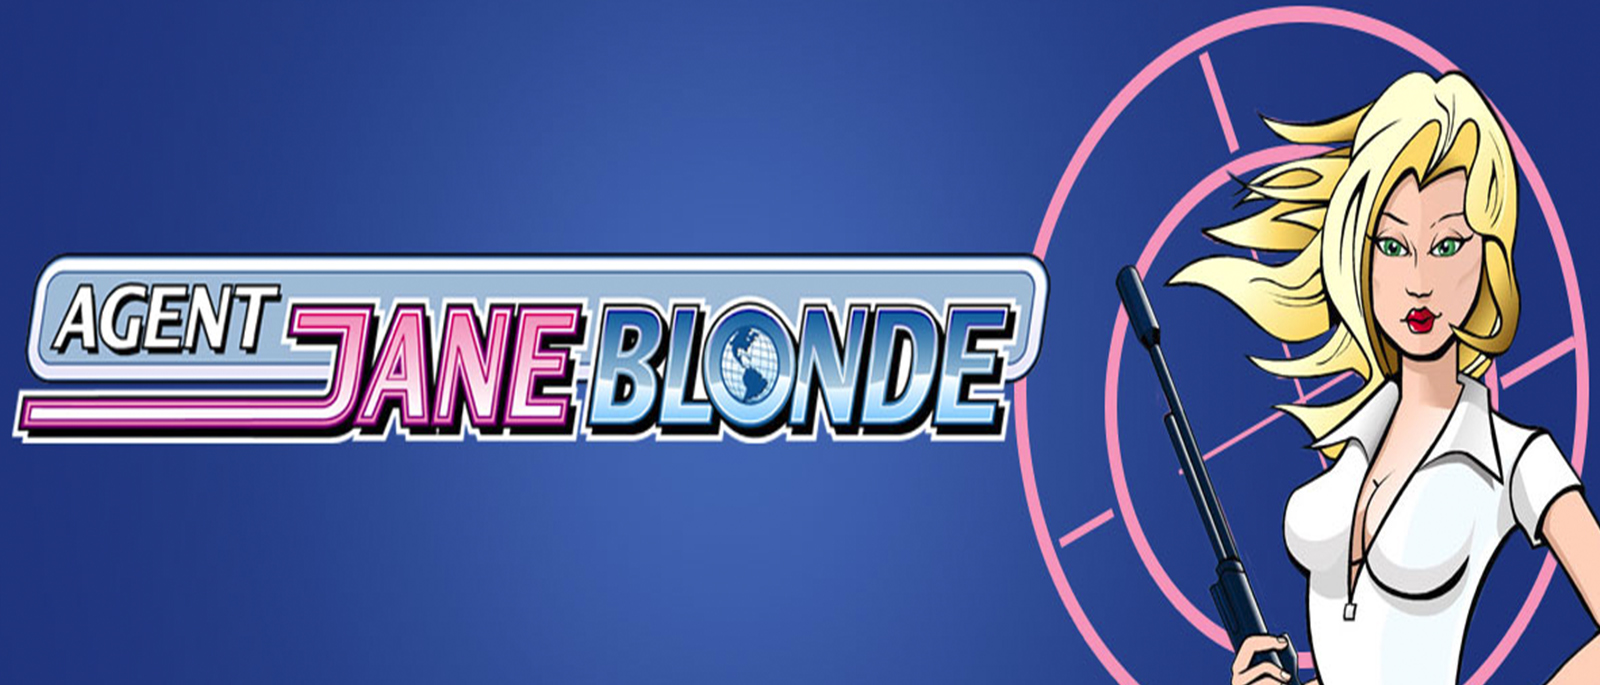 Agent Jane Blonde Slot - MicroGaming - Rizk Online Casino Deutschland